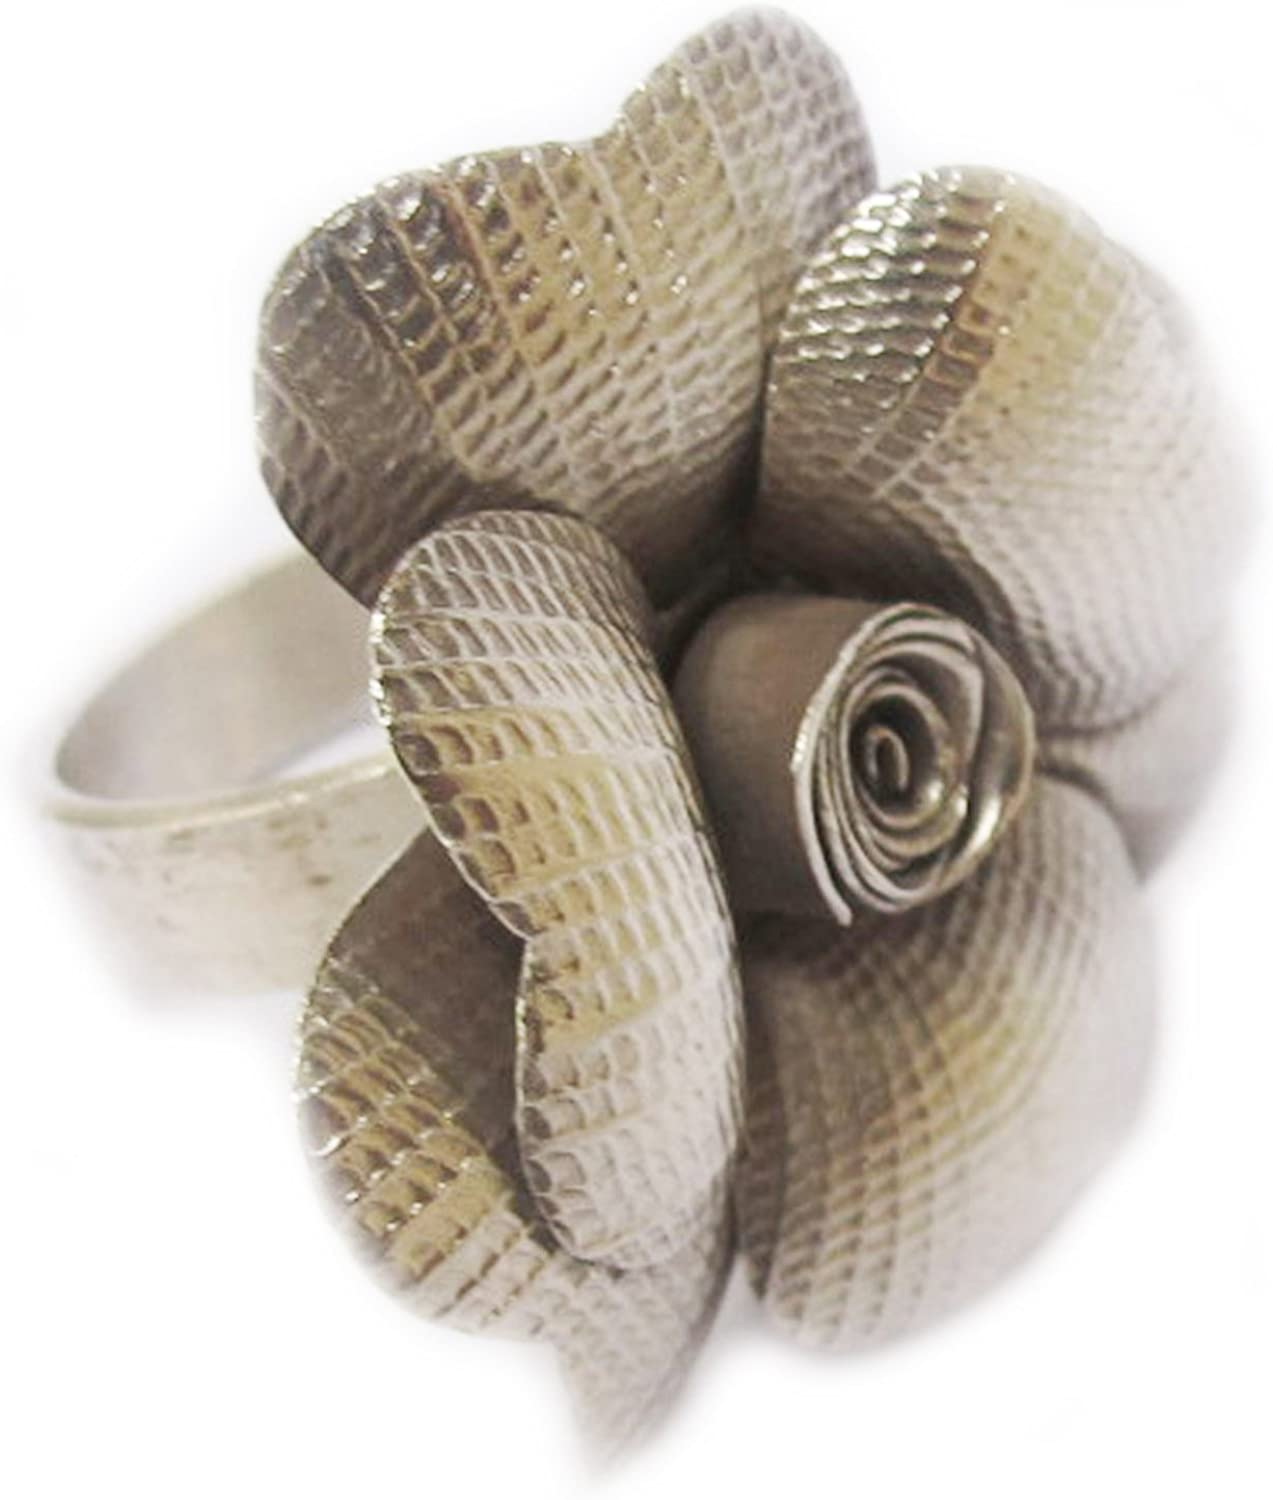 KAREAN HILL TRIBE BOX 17-101 Beautiful Free Shipping WEIGHT 9.30 G PURE 99.5/% NICE GENUINE FLOWER THAI KAREN HILL TRIBE SILVER RING SIZE NO.7 BY HANDMADE ADJUSTABLE 7-8